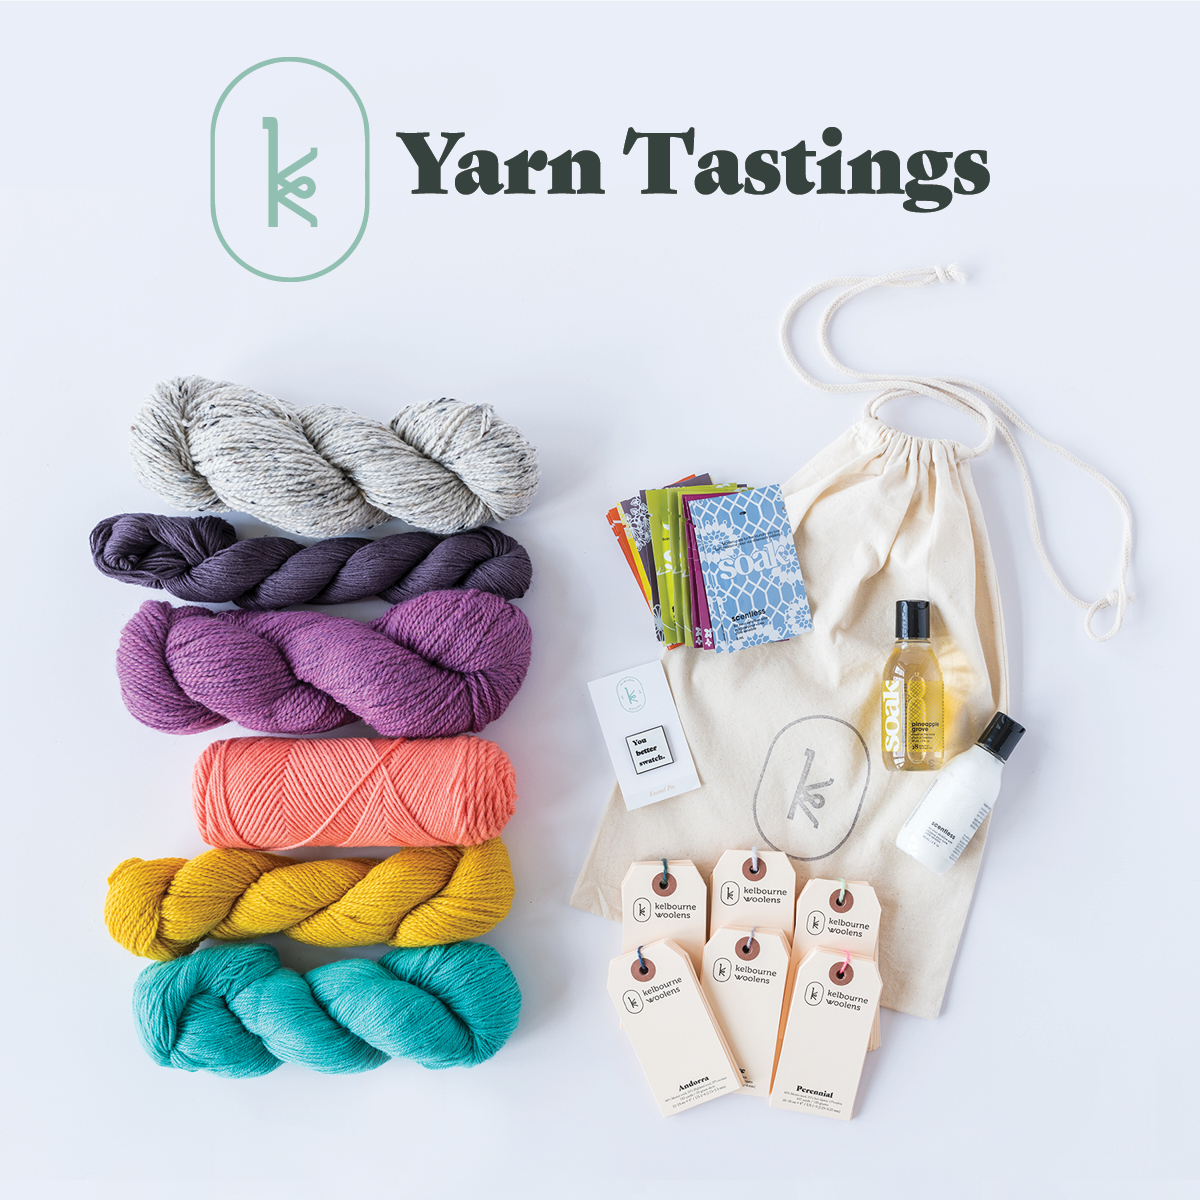 Yarn Tasting Graphic.jpg